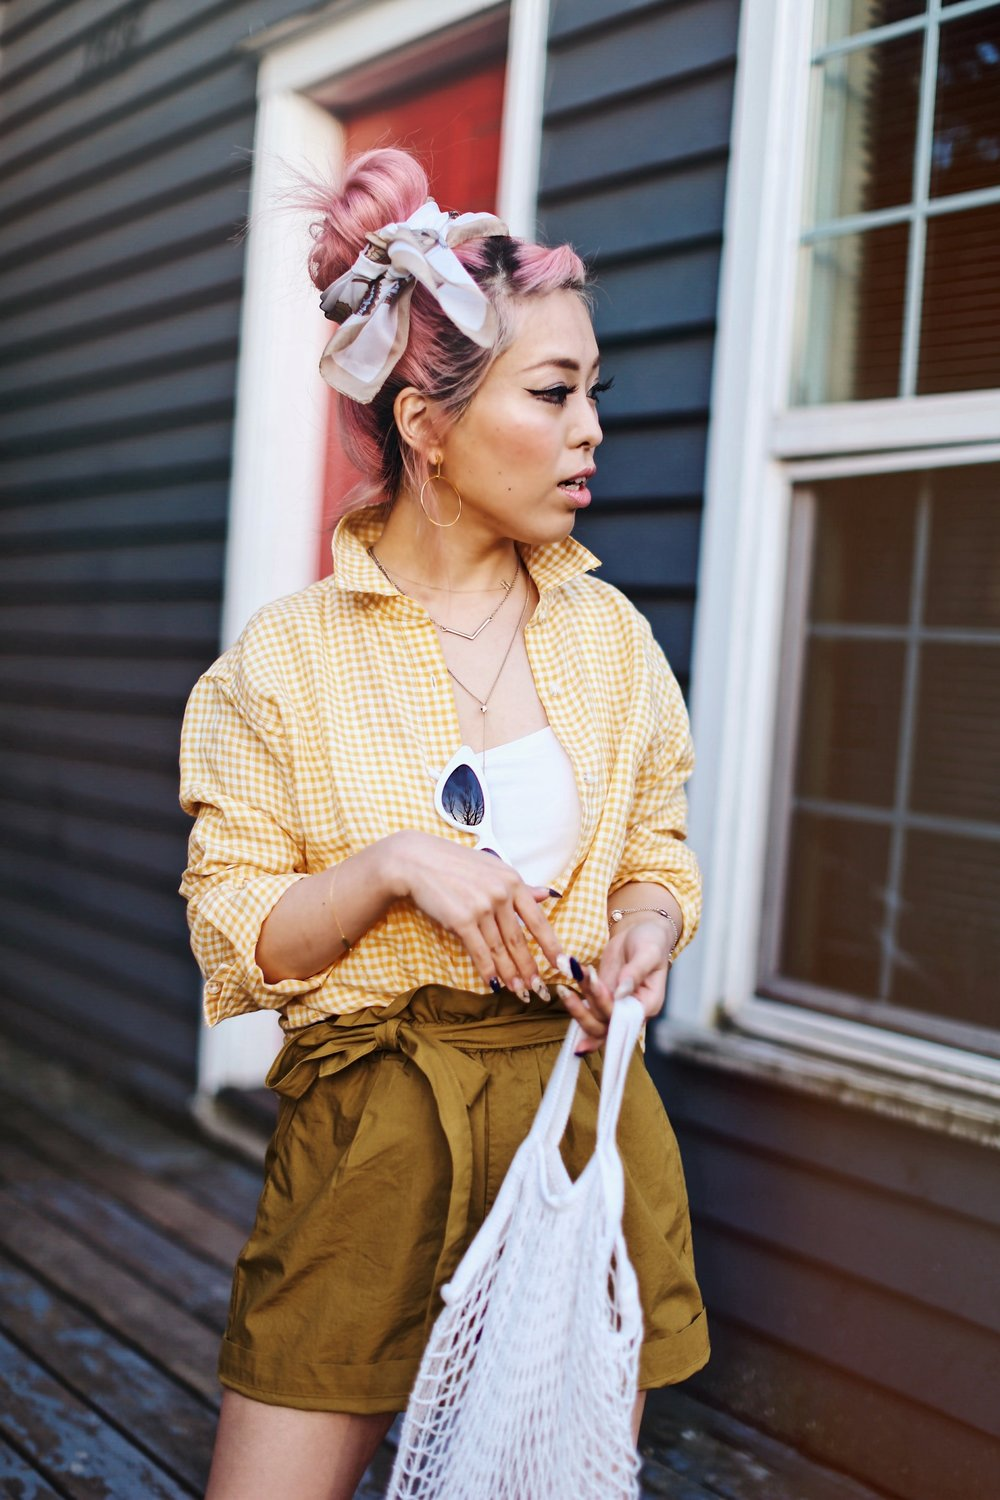 Uniqlo yellow Linen gingham shirt-Uniqlo olive paperbag shorts-Uniqlo Airism bratop-White Cat eye sunglasses ZERO UV- Pipe + Row White net bag-Vintage scarf bun hairstyle-ALDO Embroidered Nude mules-Aika's Love Closet-seattle fashion style blogger-Japanese-pink hair-smiling-spring fashion 3